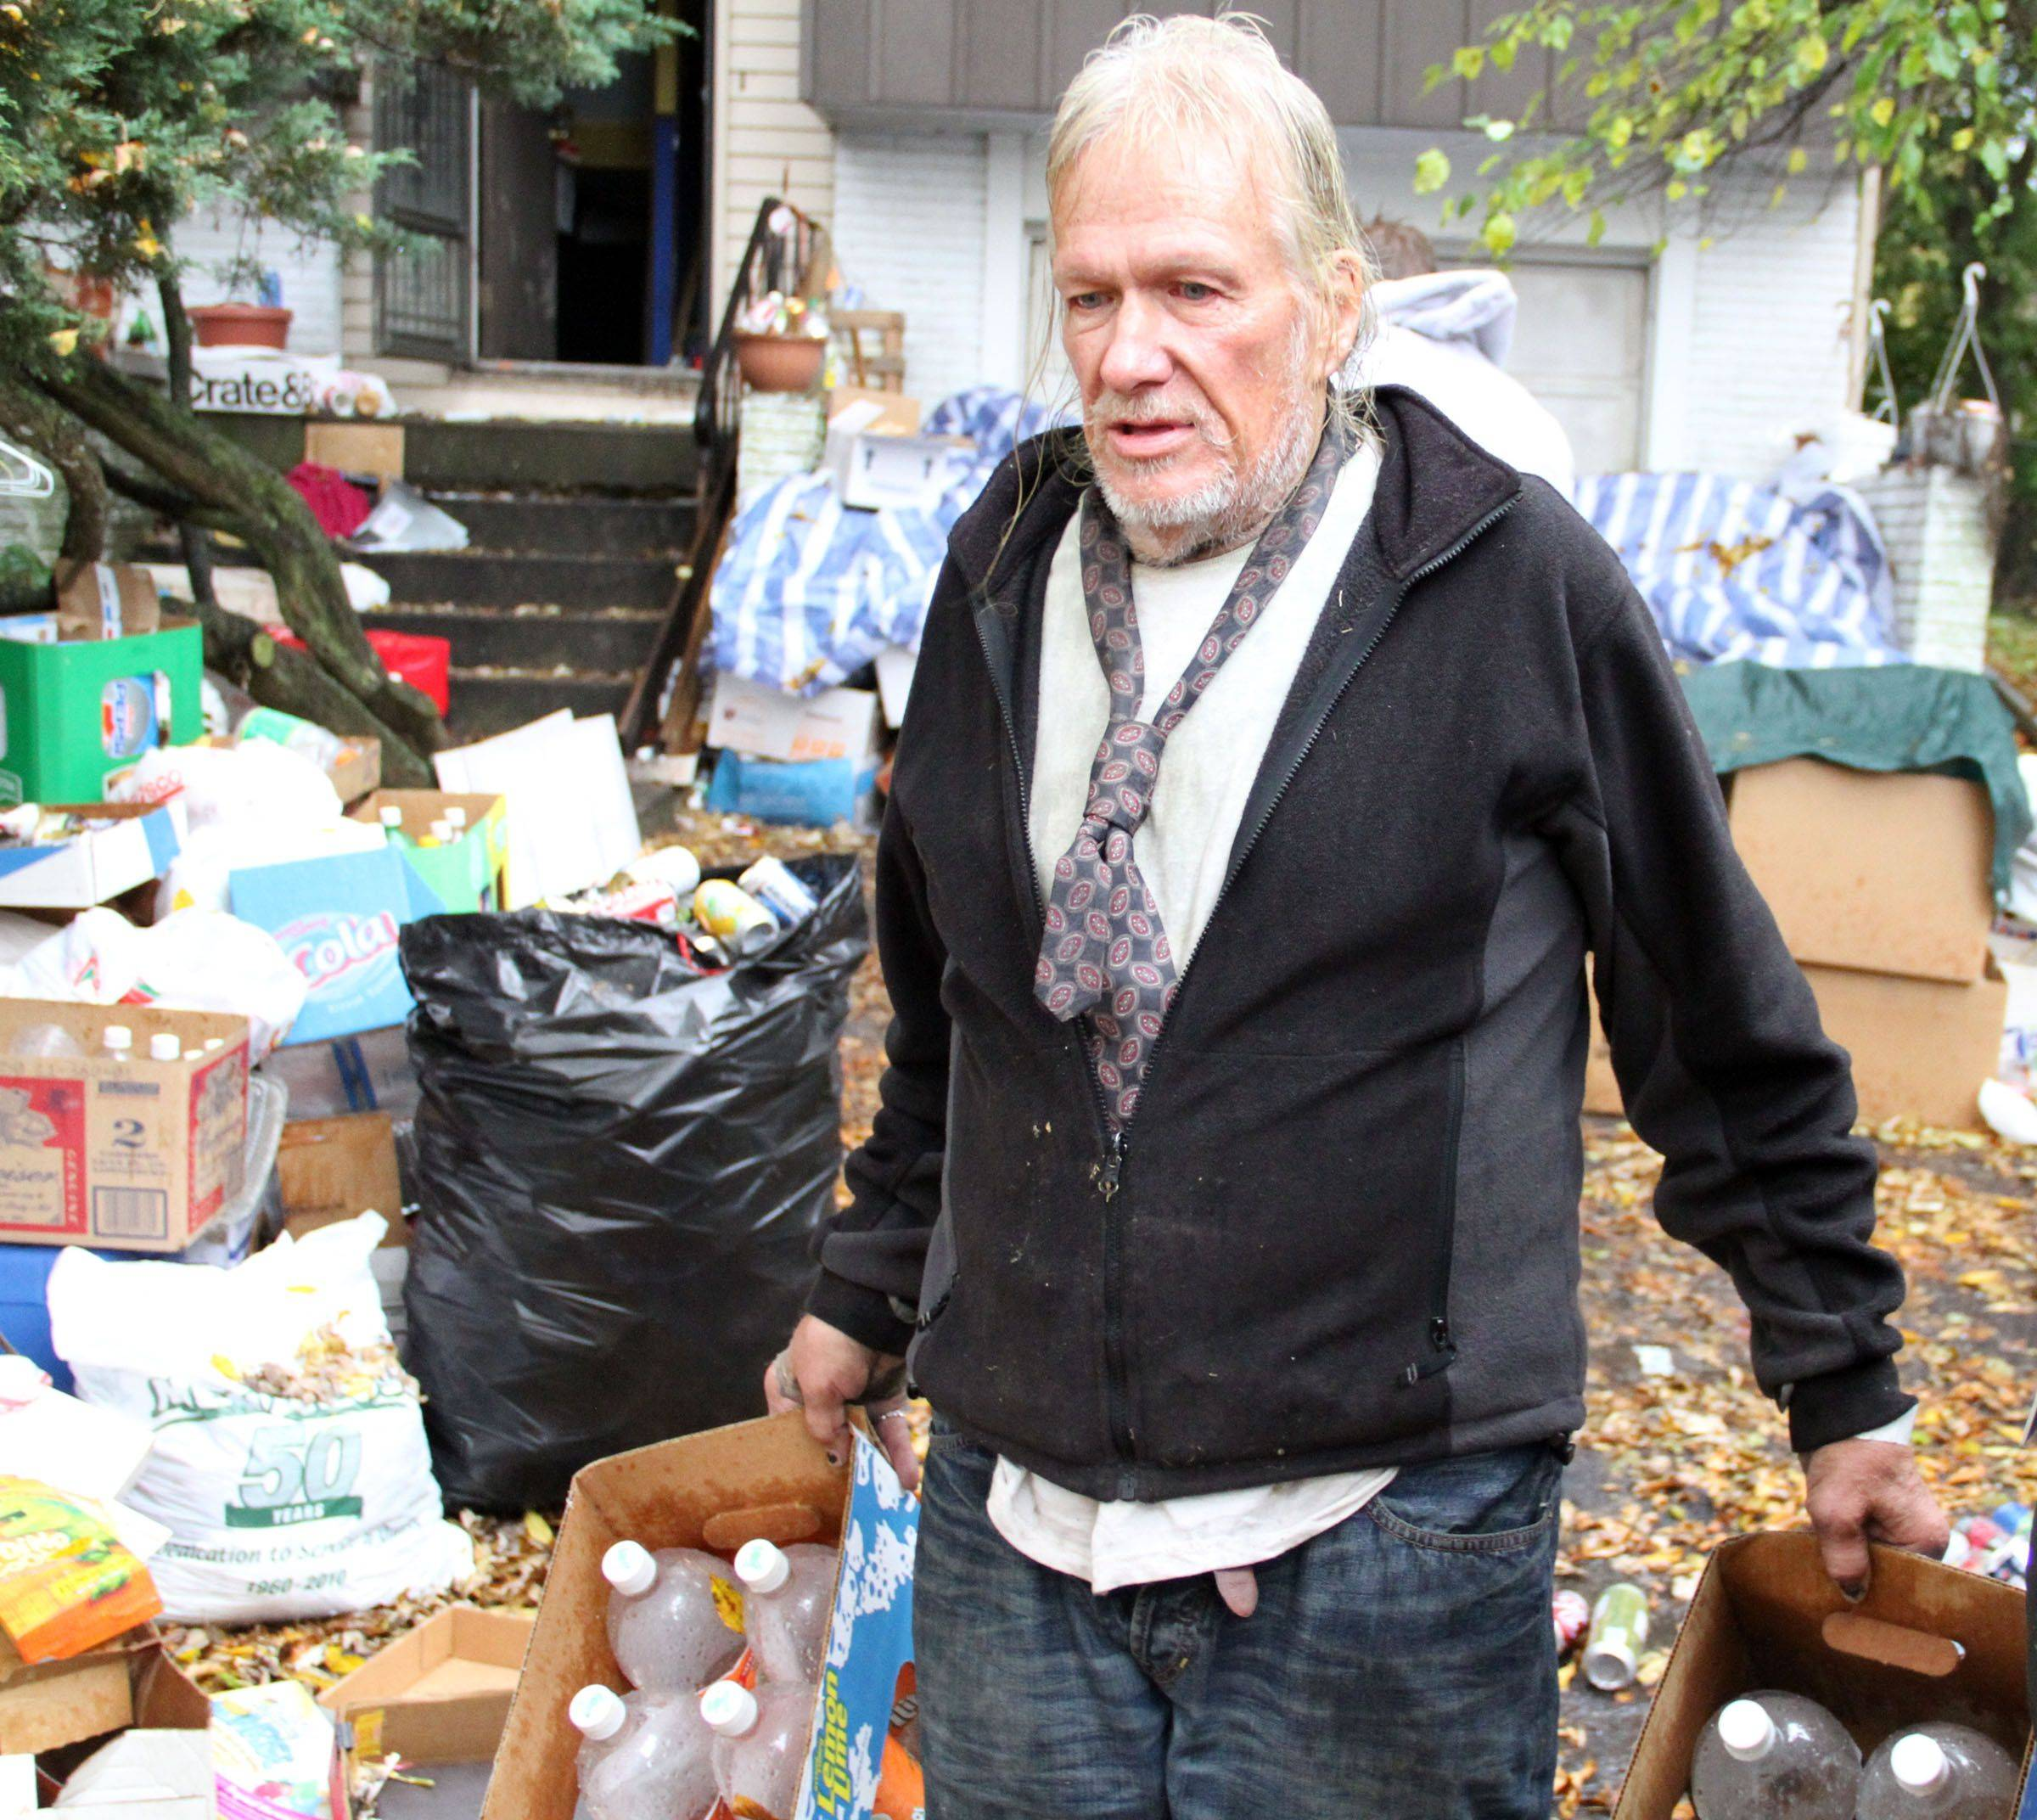 John Wuerffel gathers recycled items that he is trying to save as workers from Junk King remove items from his house, backyard, and front yard on Hampton Lane in Schaumburg.